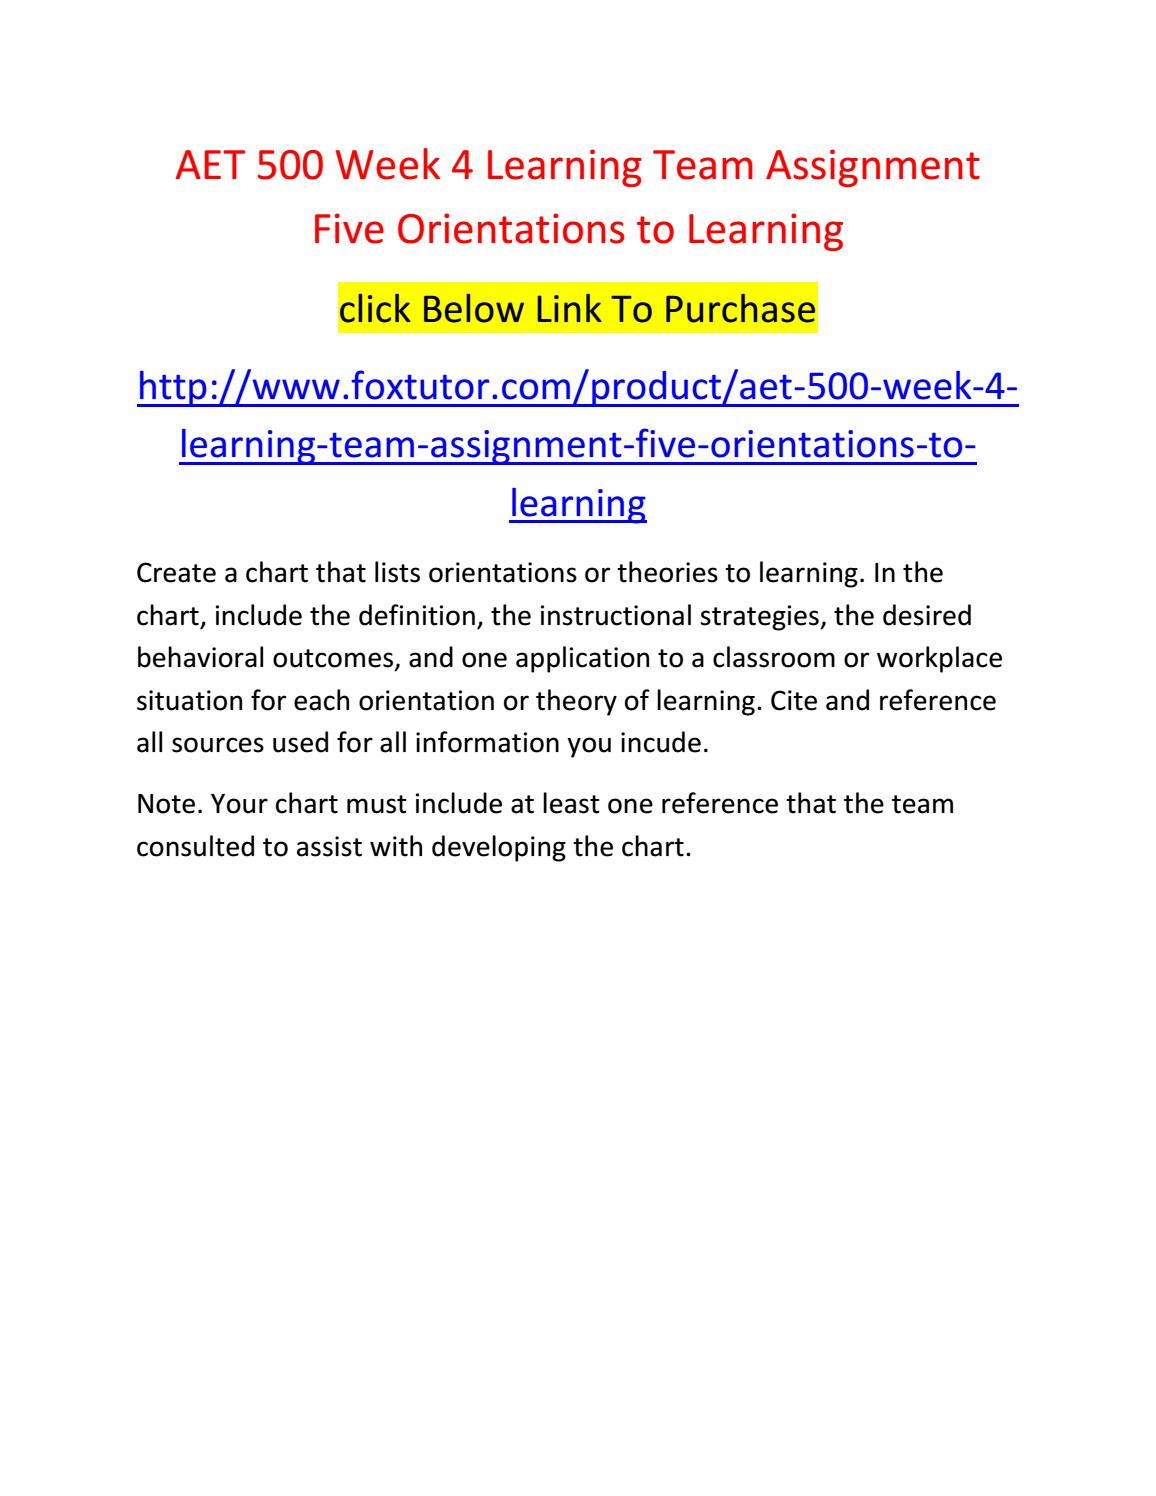 Aet 500 Week 4 Learning Team Assignment Five Orientations To